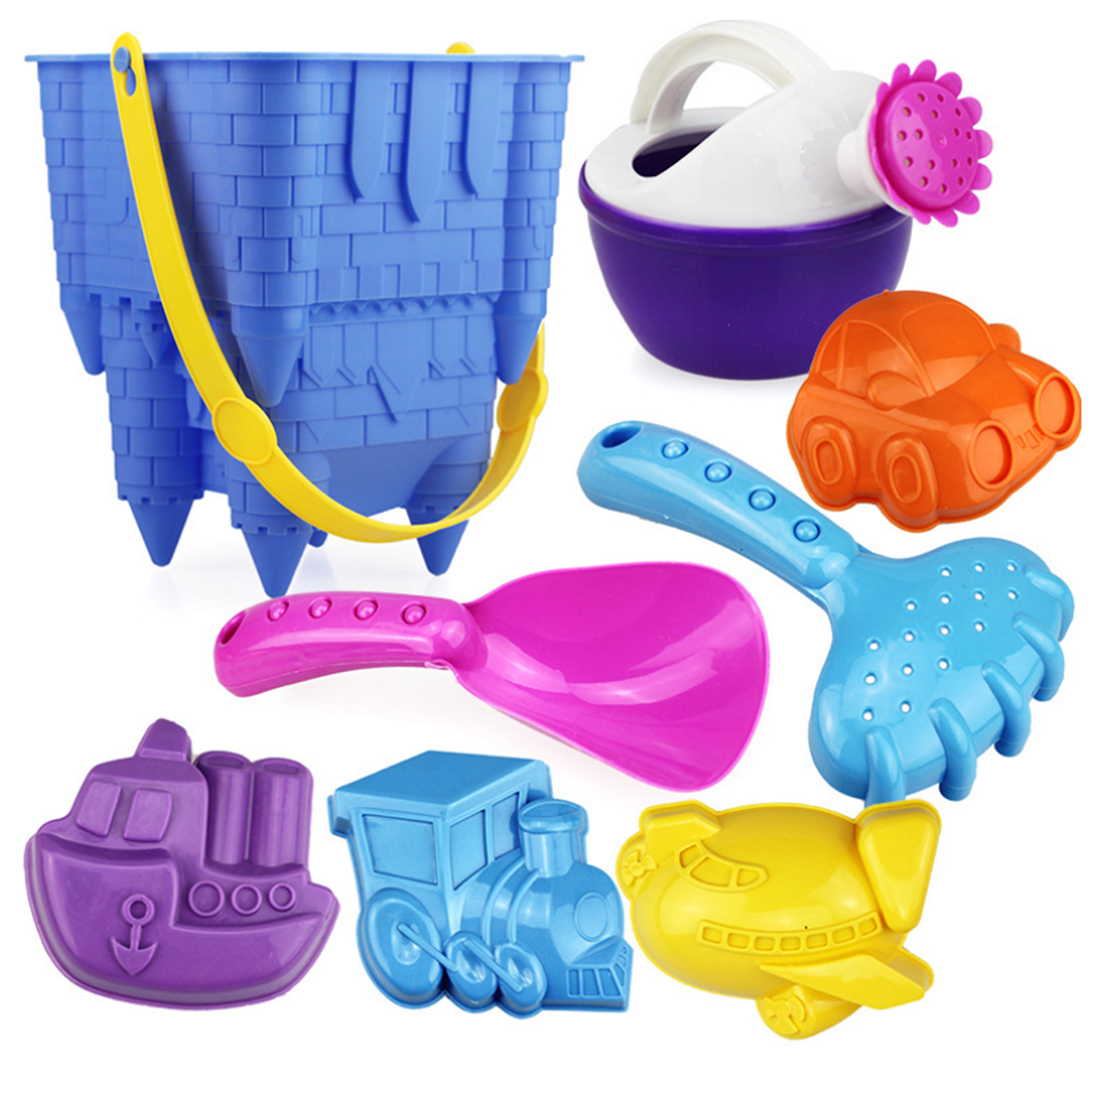 8Pcs Beach Toy Set Castle Bucket Shovel Children Safety Plastic Fancy Toys Gifts For Children Kids- Color Random